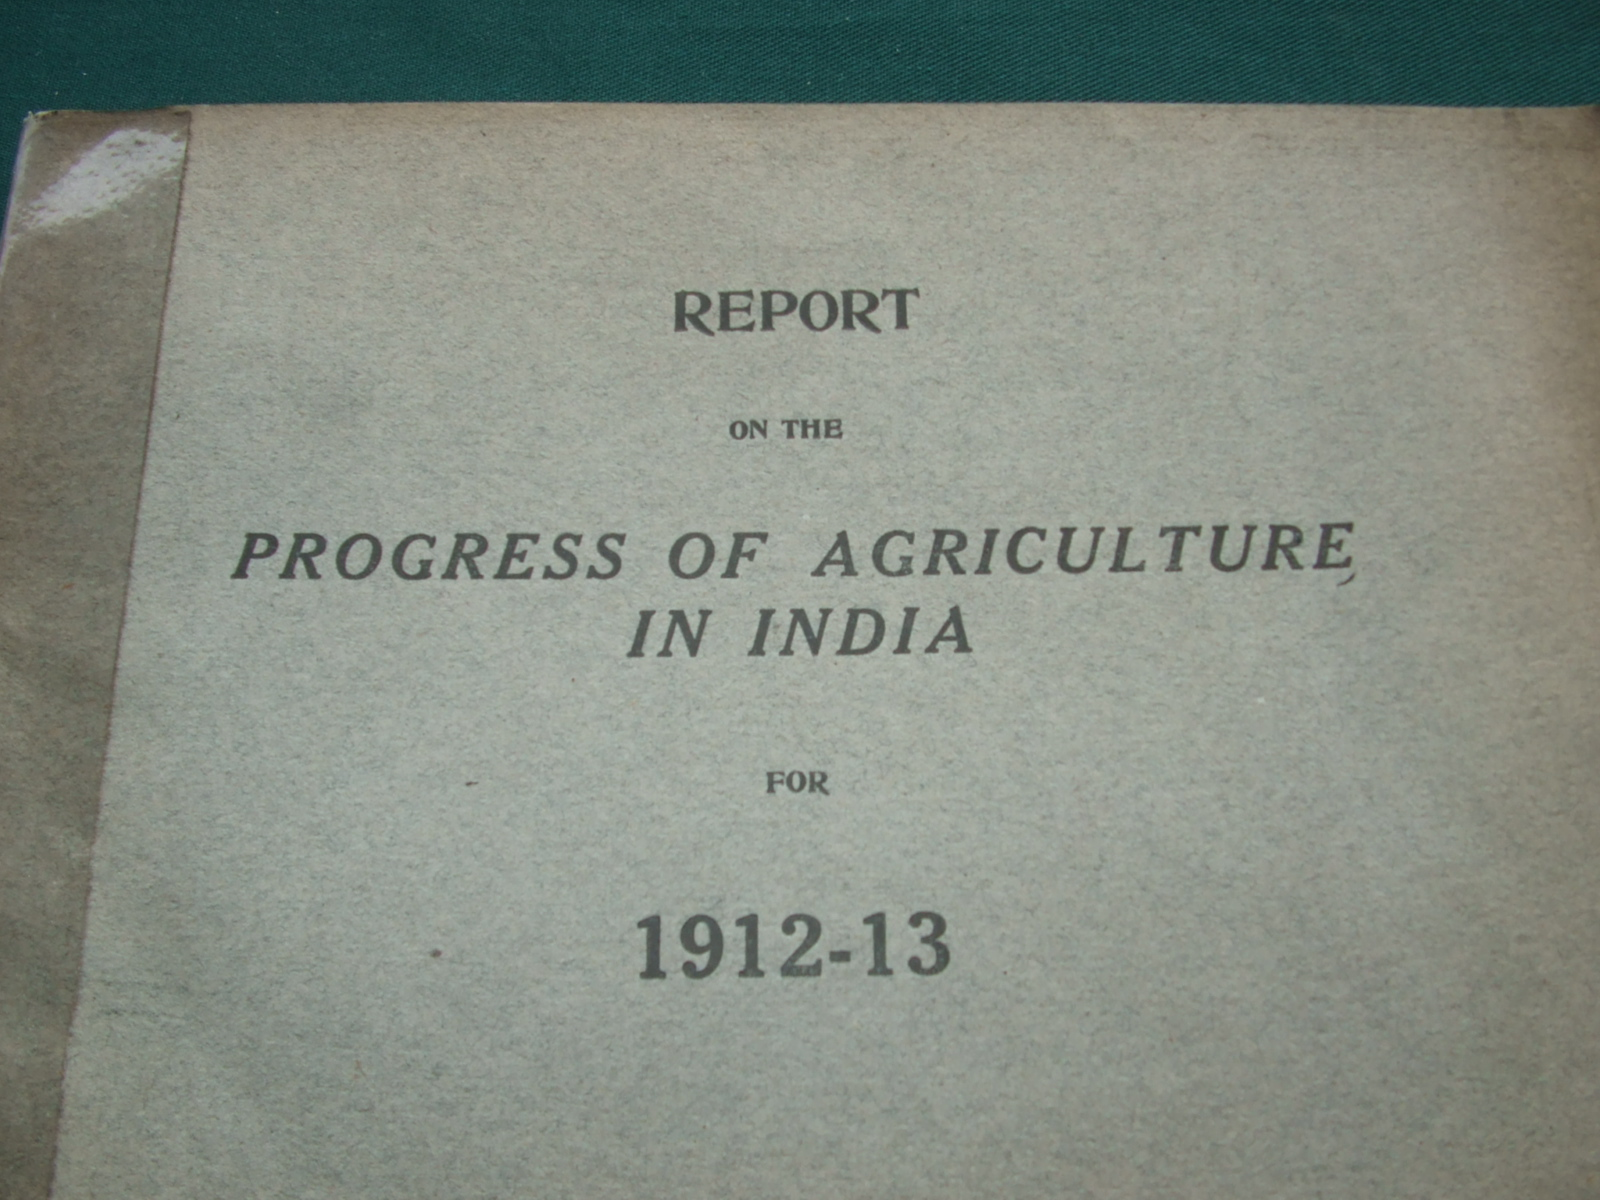 Image for Report on the Progress of Agriculture in India for 1912-13